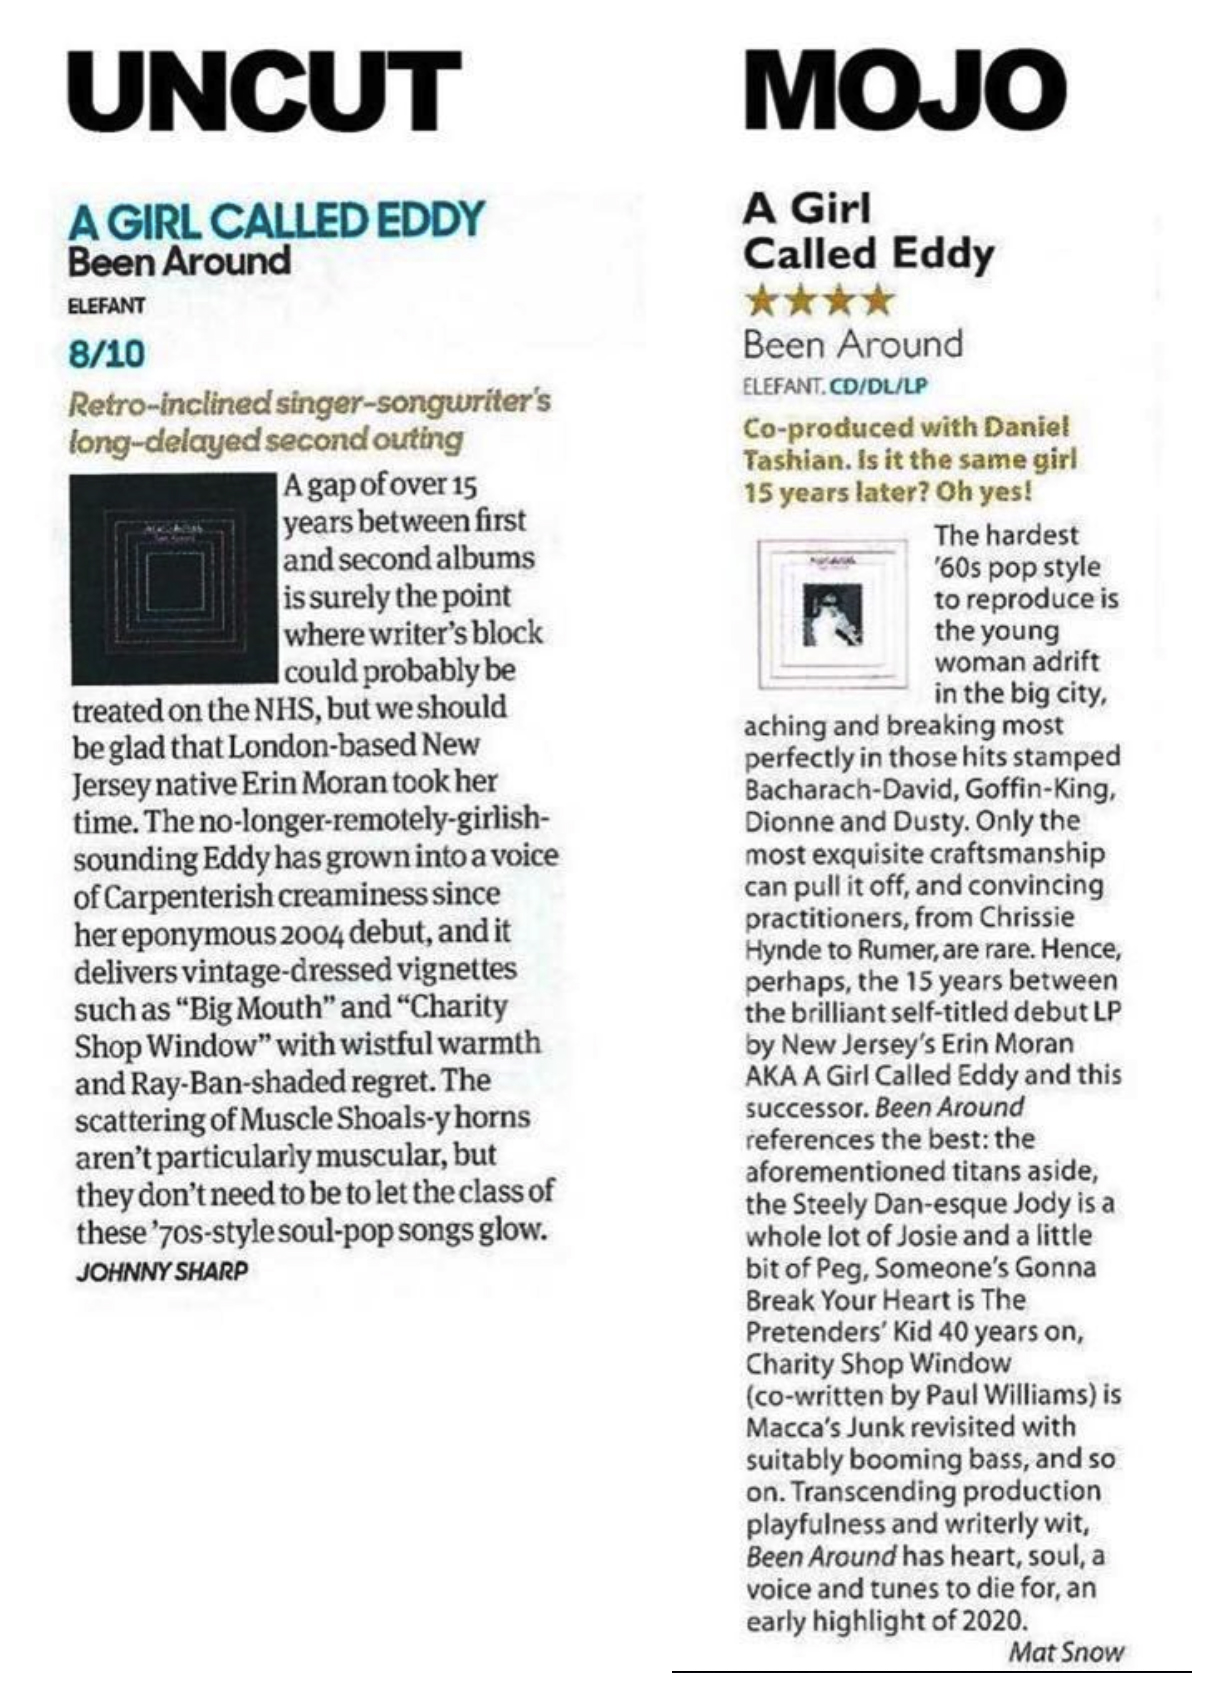 A Girl Called Eddy - Been Around - Mojo and Uncut